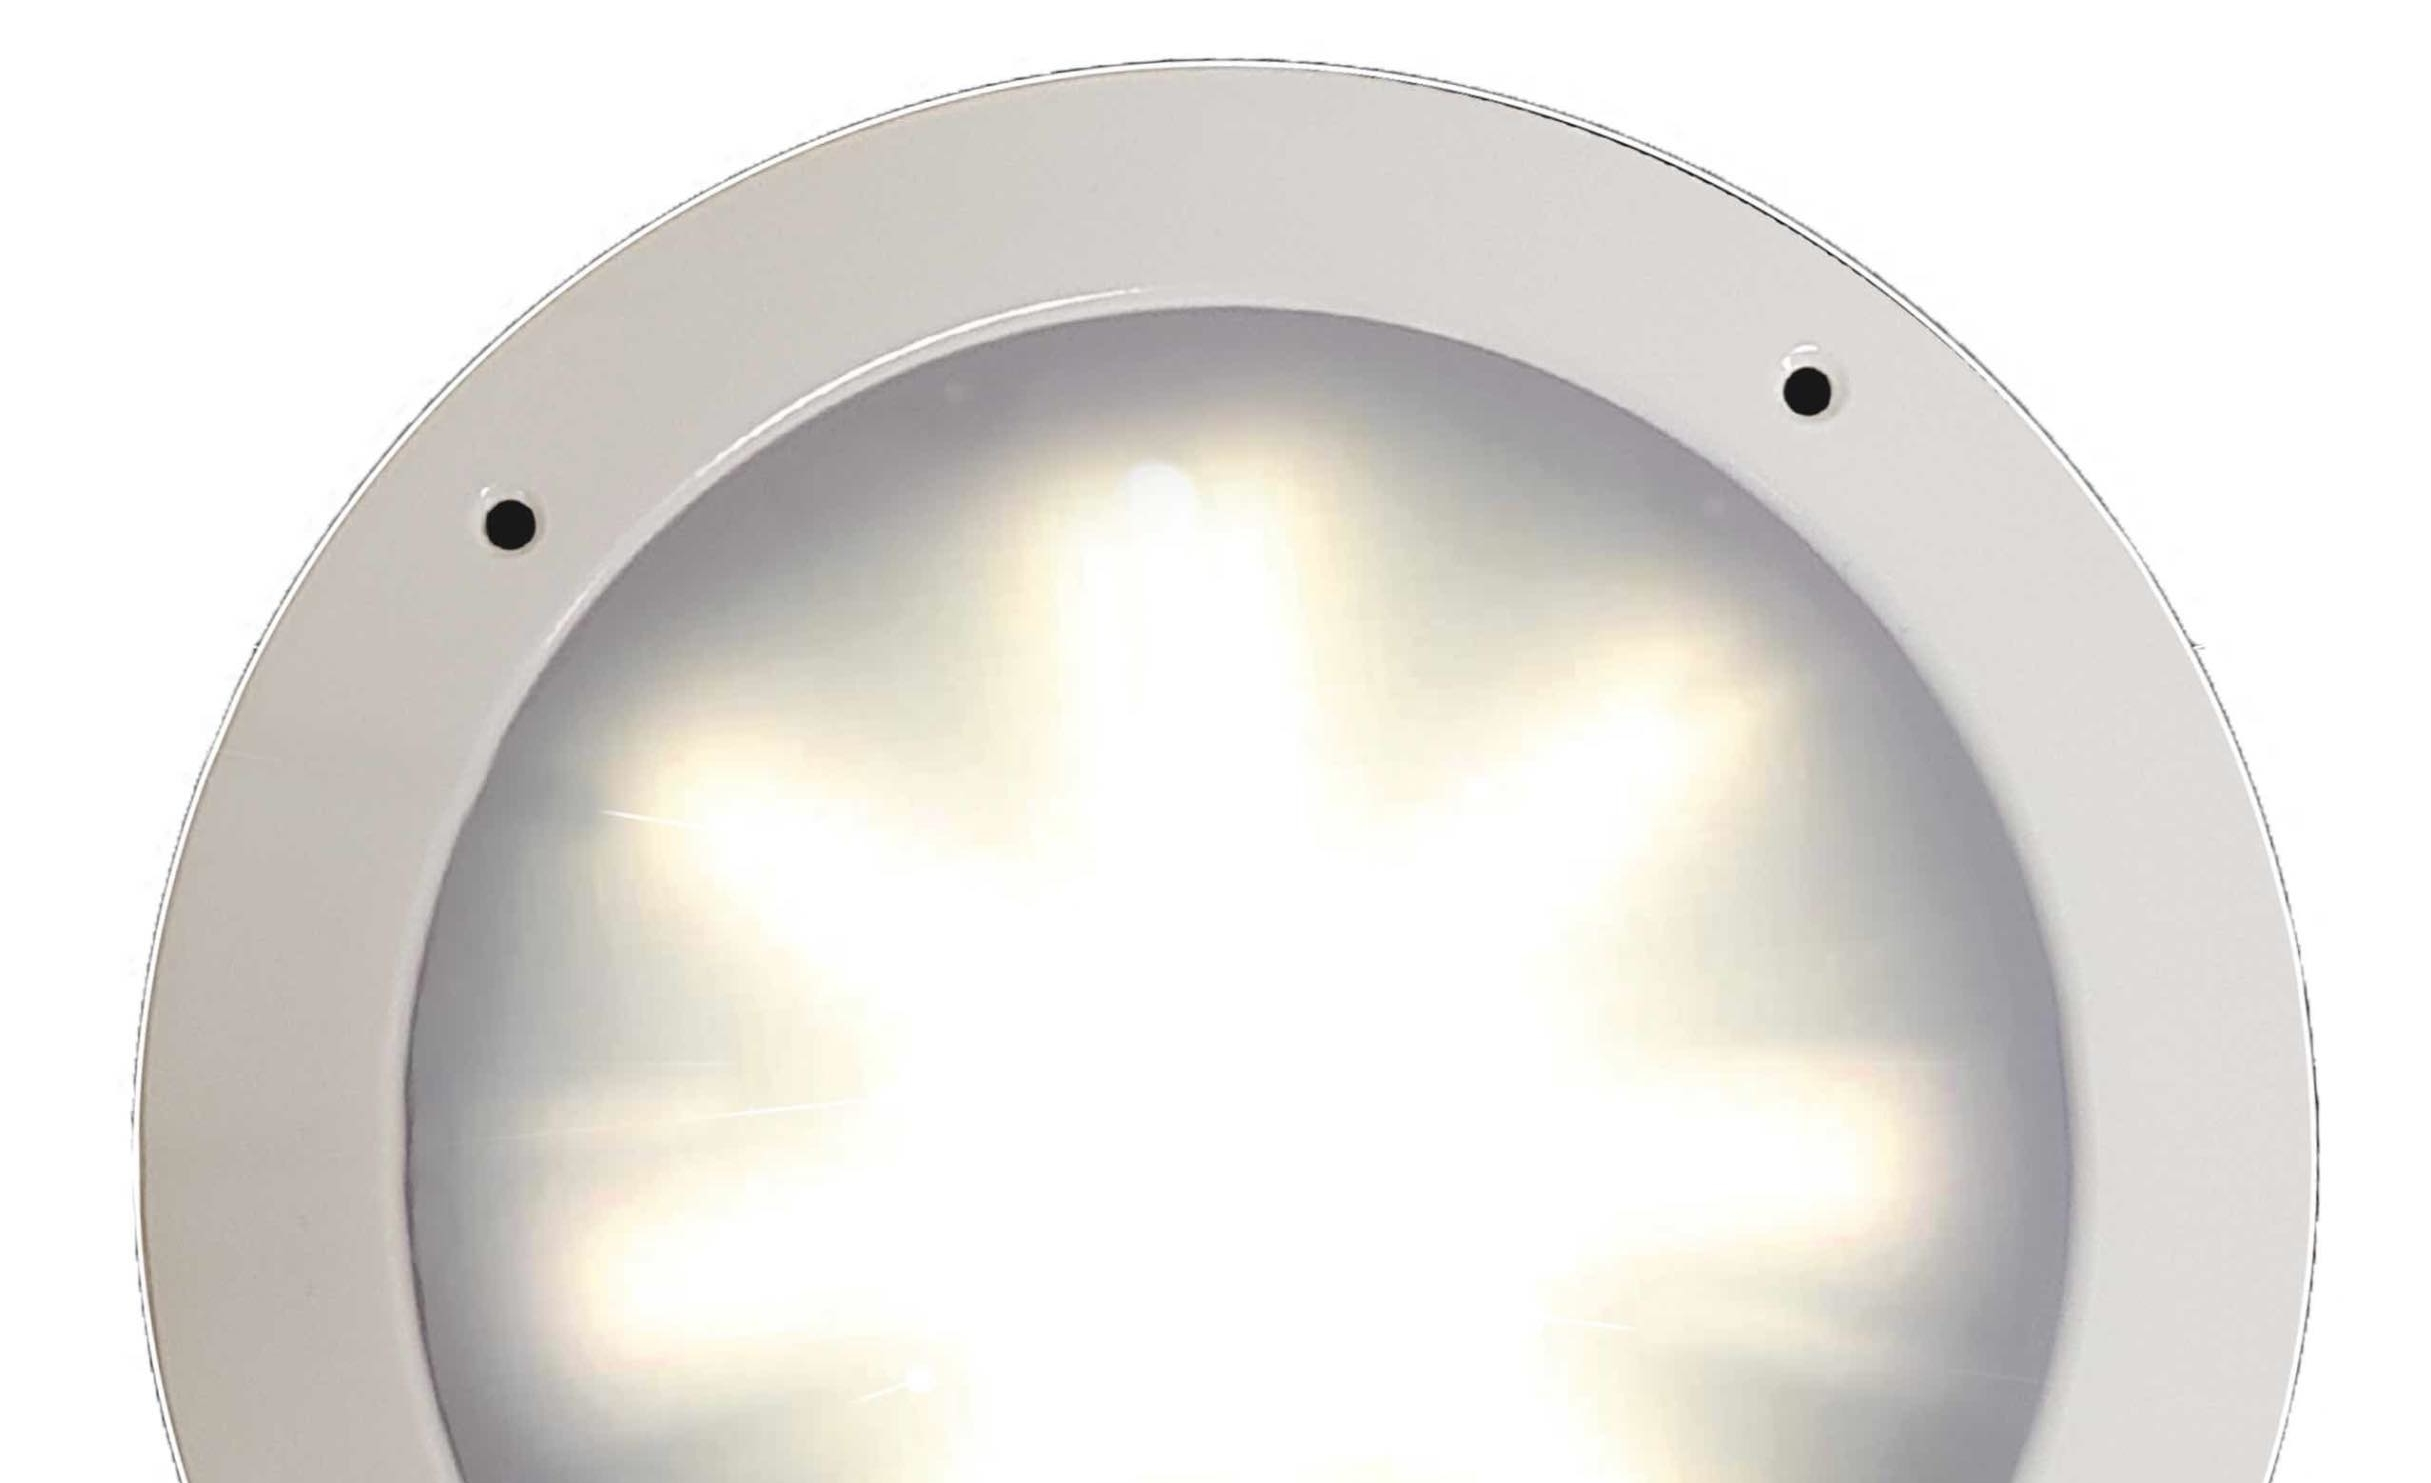 bus disinfection lamp led